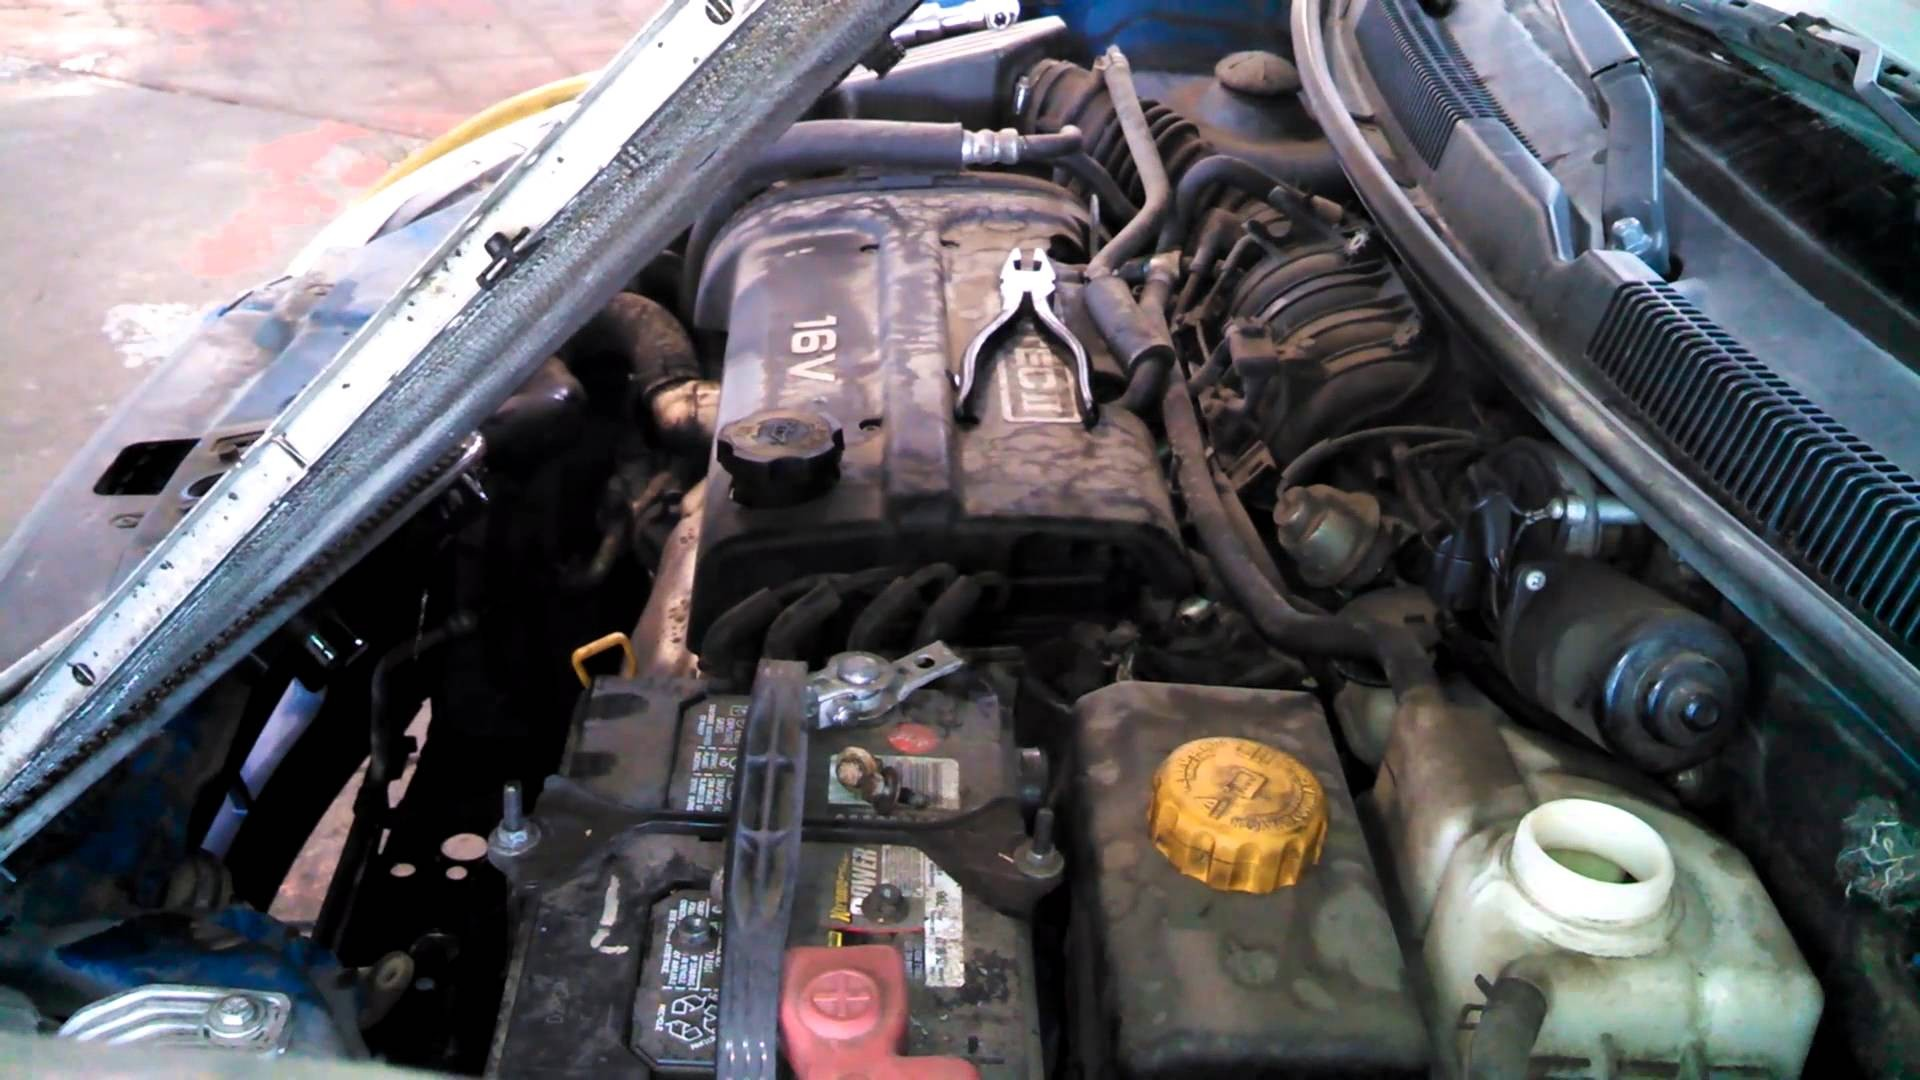 Chevy Aveo Engine Diagram Wiring Library Dcs Grill 2007 Radiator Replacement Chevrolet Install Remove Replace How Of